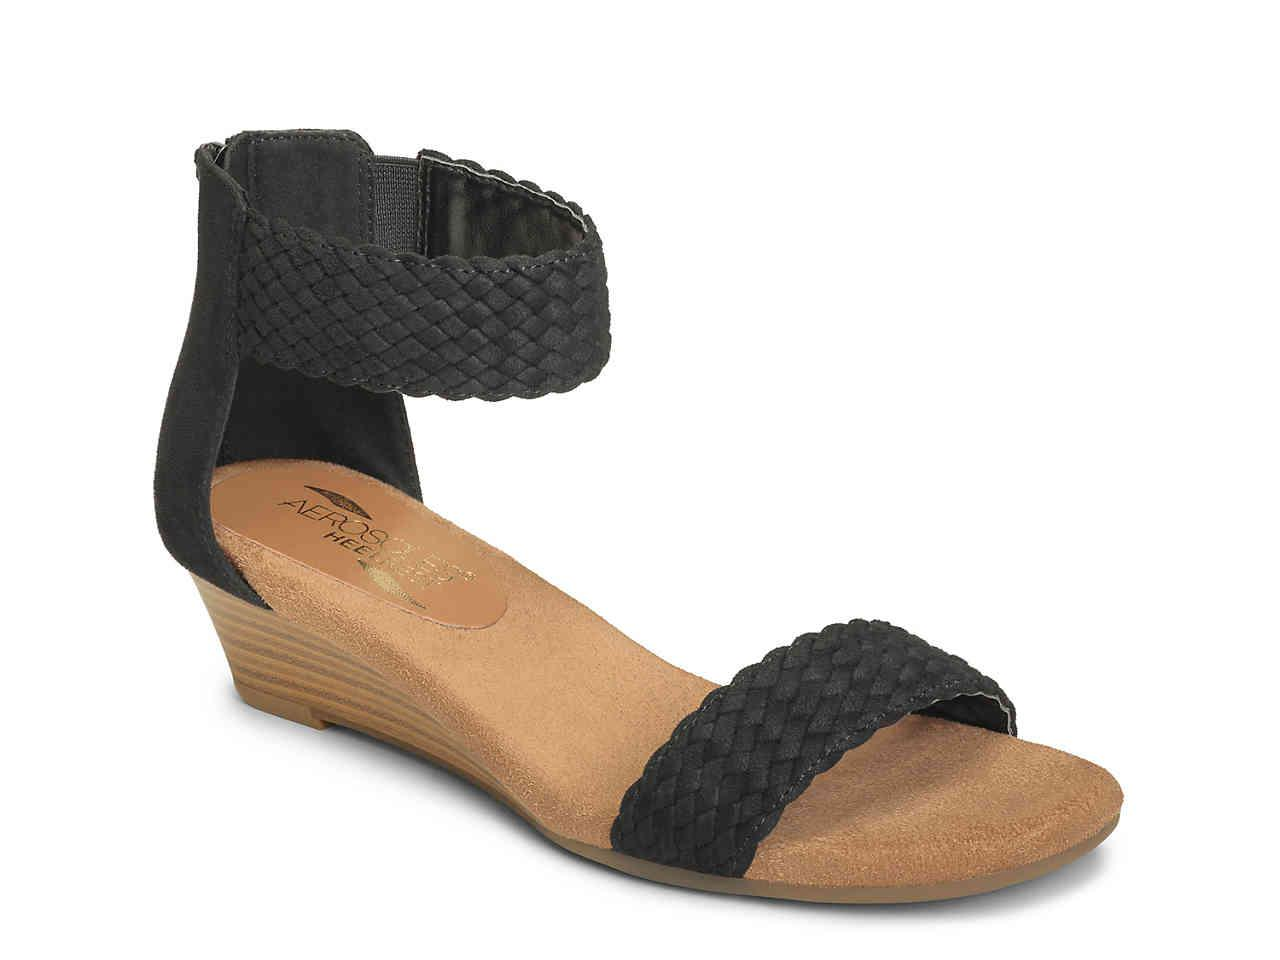 dde64a2ca88 Lyst - Aerosoles Yetroactive Wedge Sandal in Black